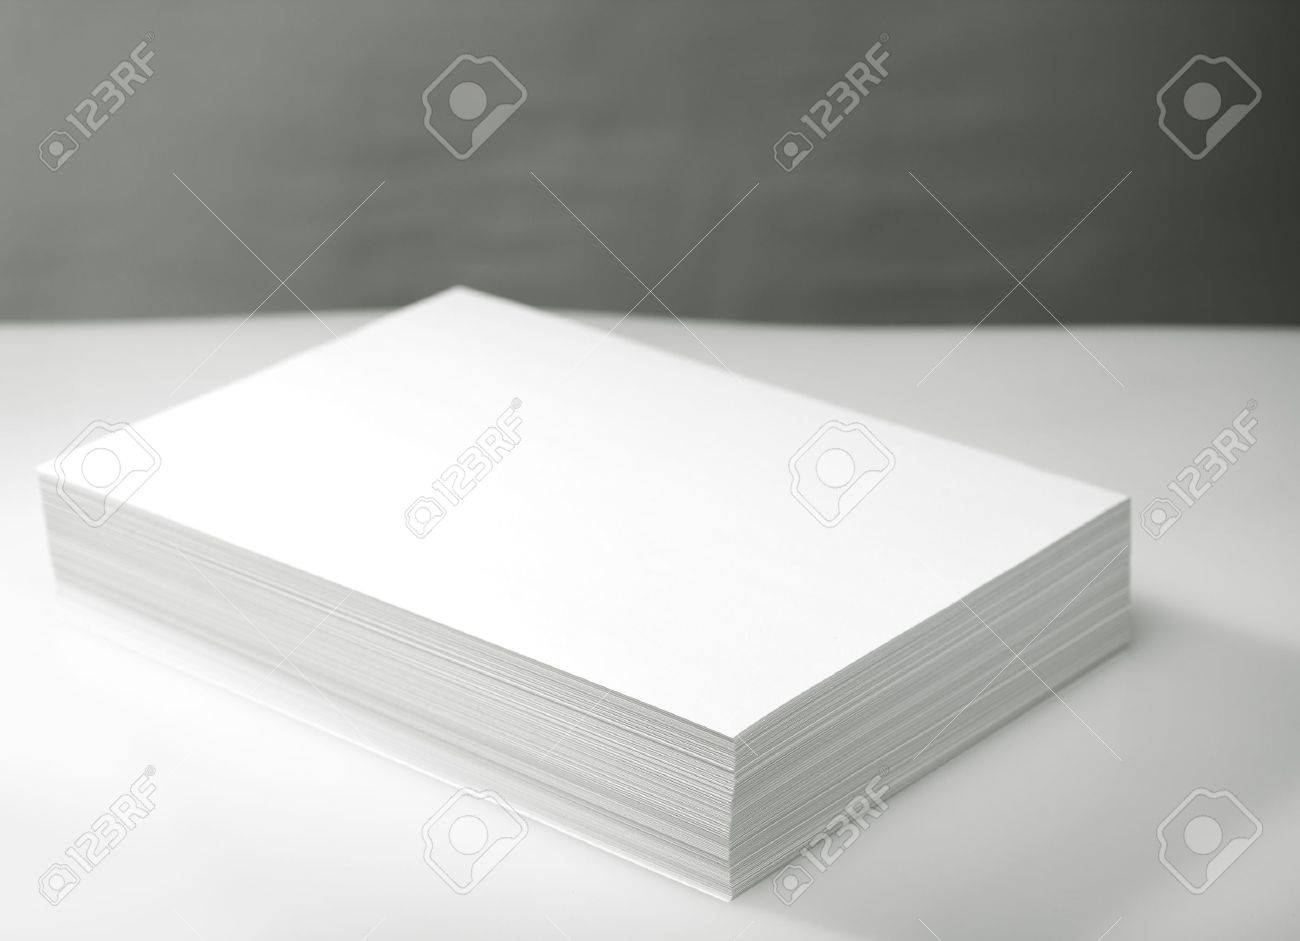 Stack of white printer and copier paper Stock Photo - 12554080